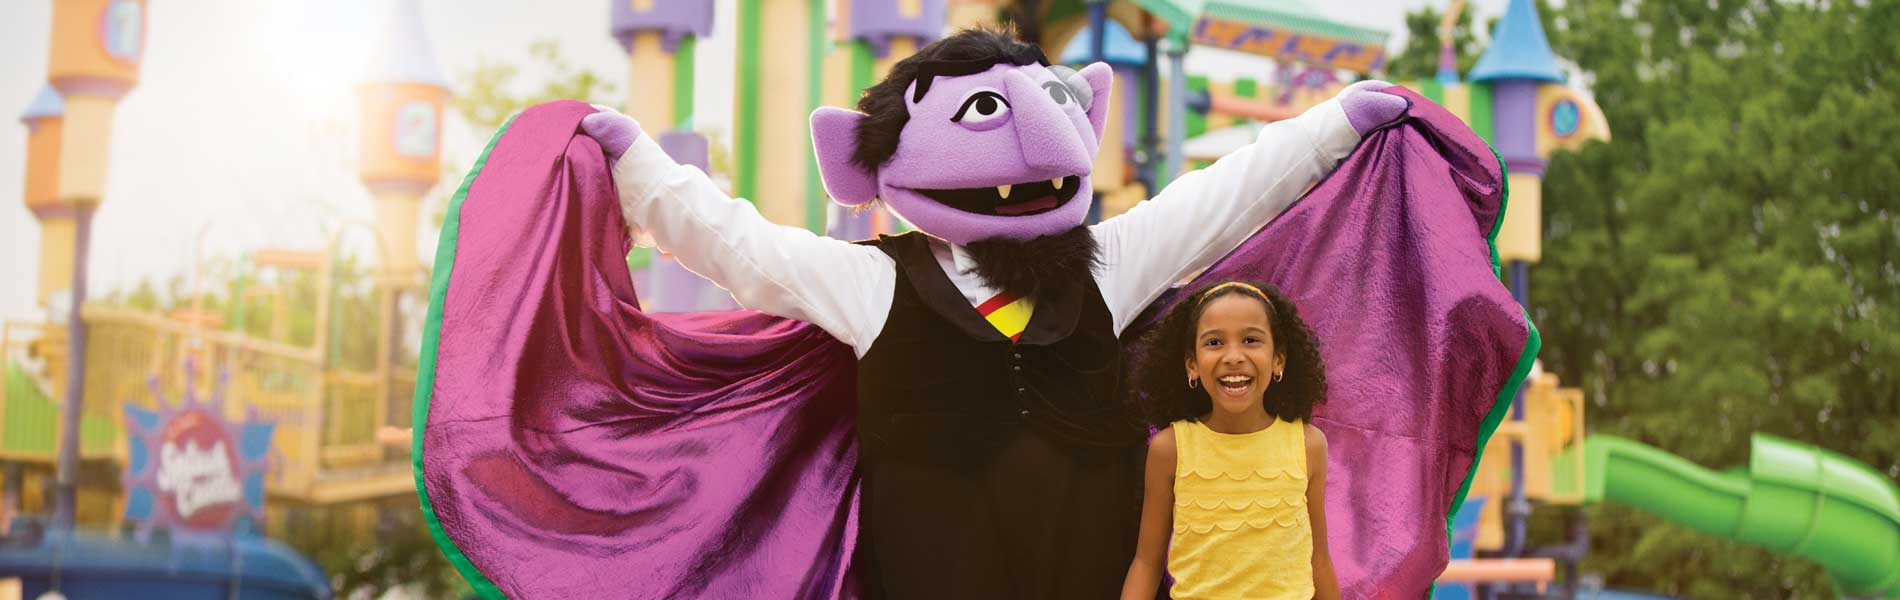 Count von Count raises cape behind a young girl at Sesame Place theme park